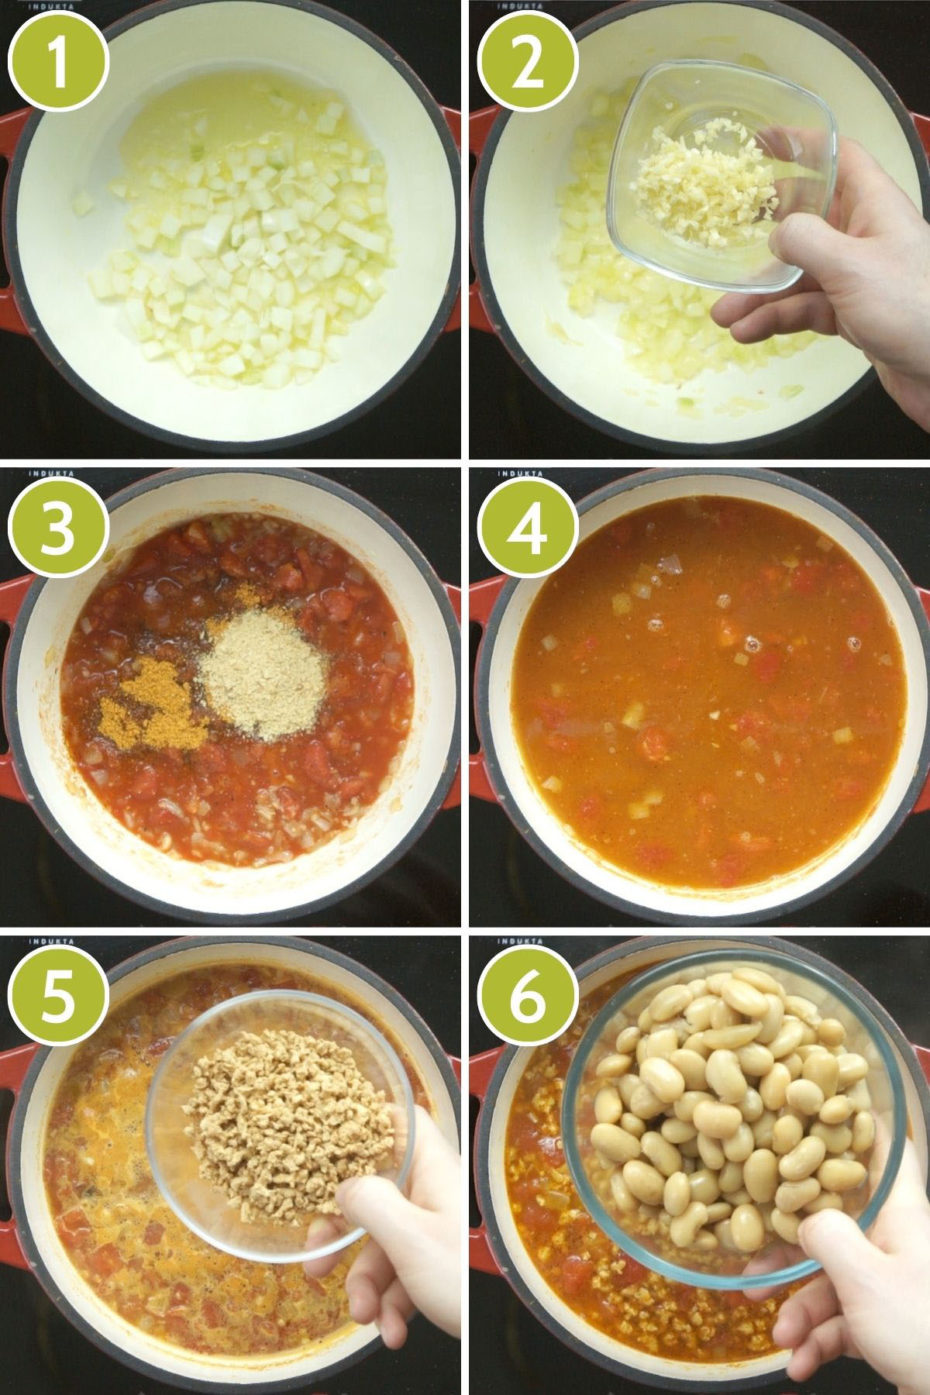 Collage of 6 photos showing a red dutch oven from above and the steps to make vegan taco soup starting this adding chopped onion, then garlic, then tomato and seasoning, then veggie broth, then mince, then beans